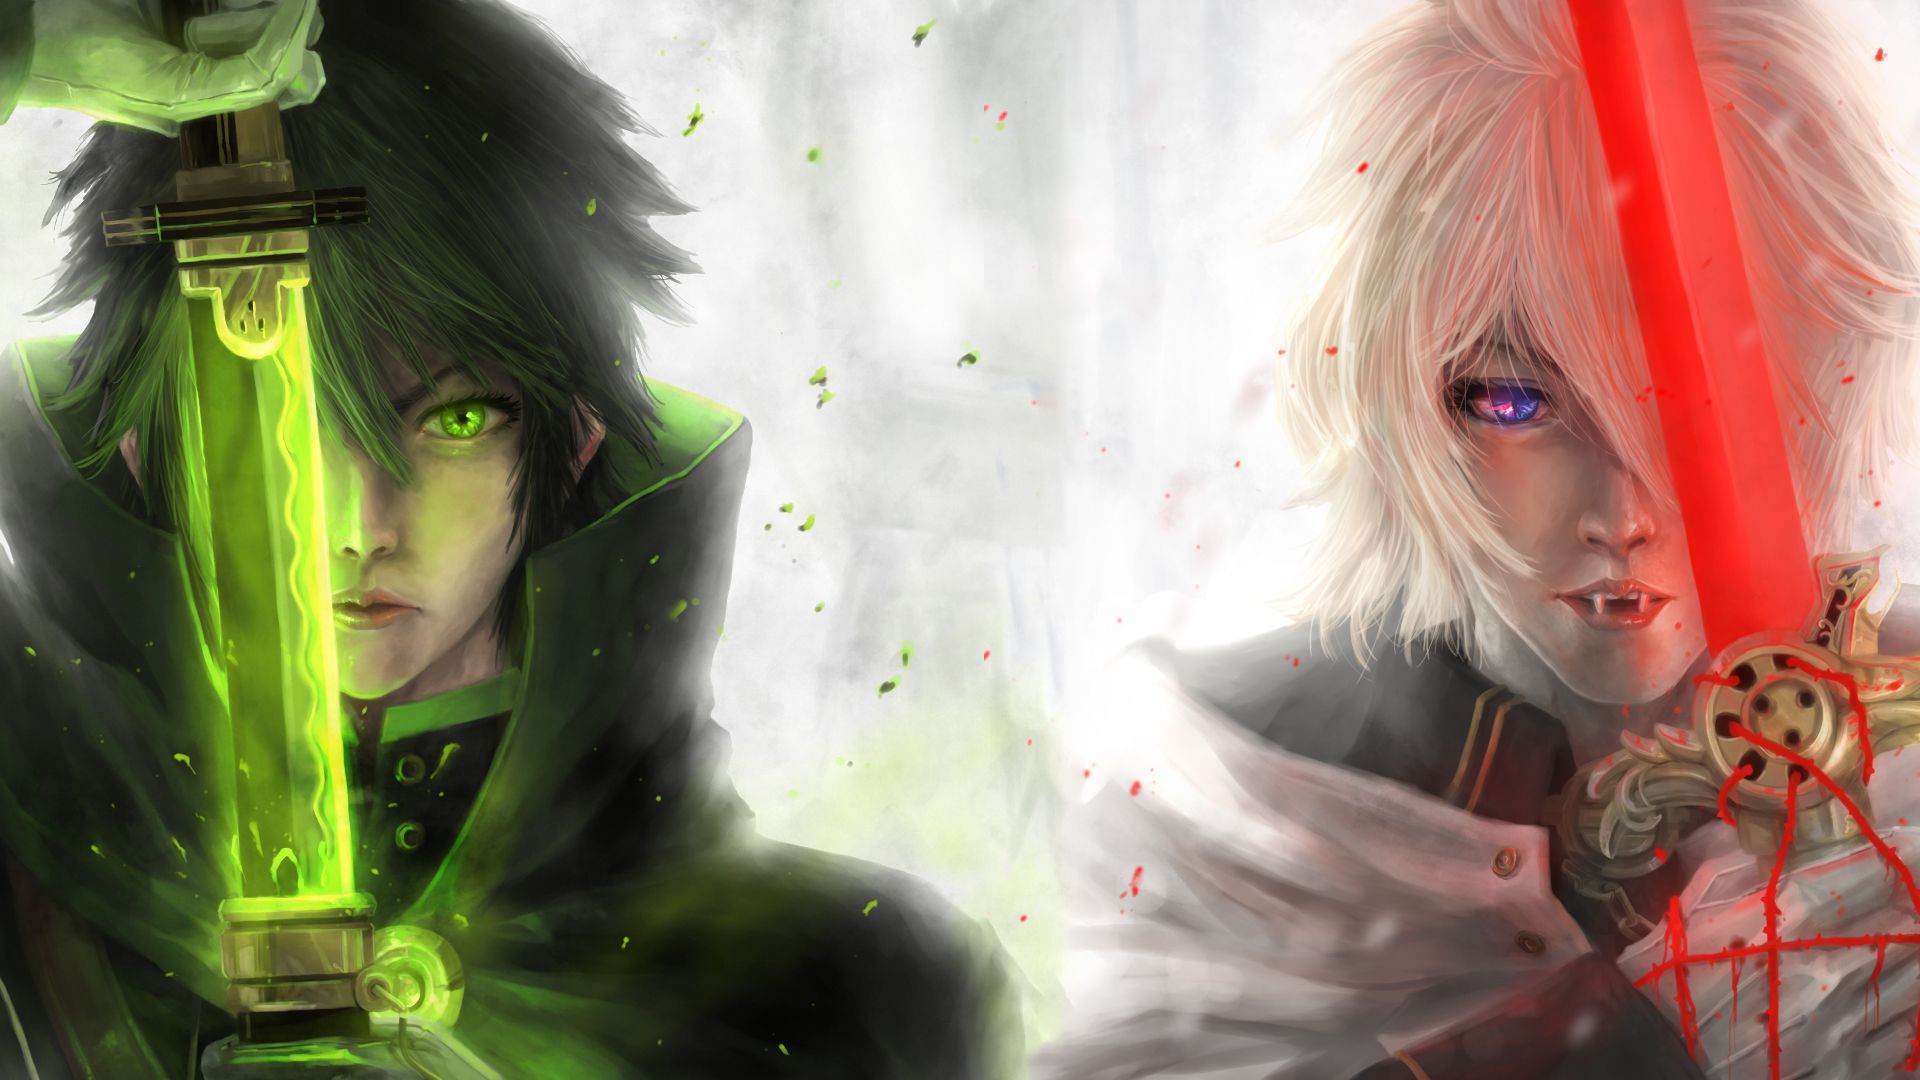 View Download Comment And Rate This 1920x1080 Seraph Of The End Wallpaper Wallpaper Abyss Seraph Of The End Seraphim Owari No Seraph